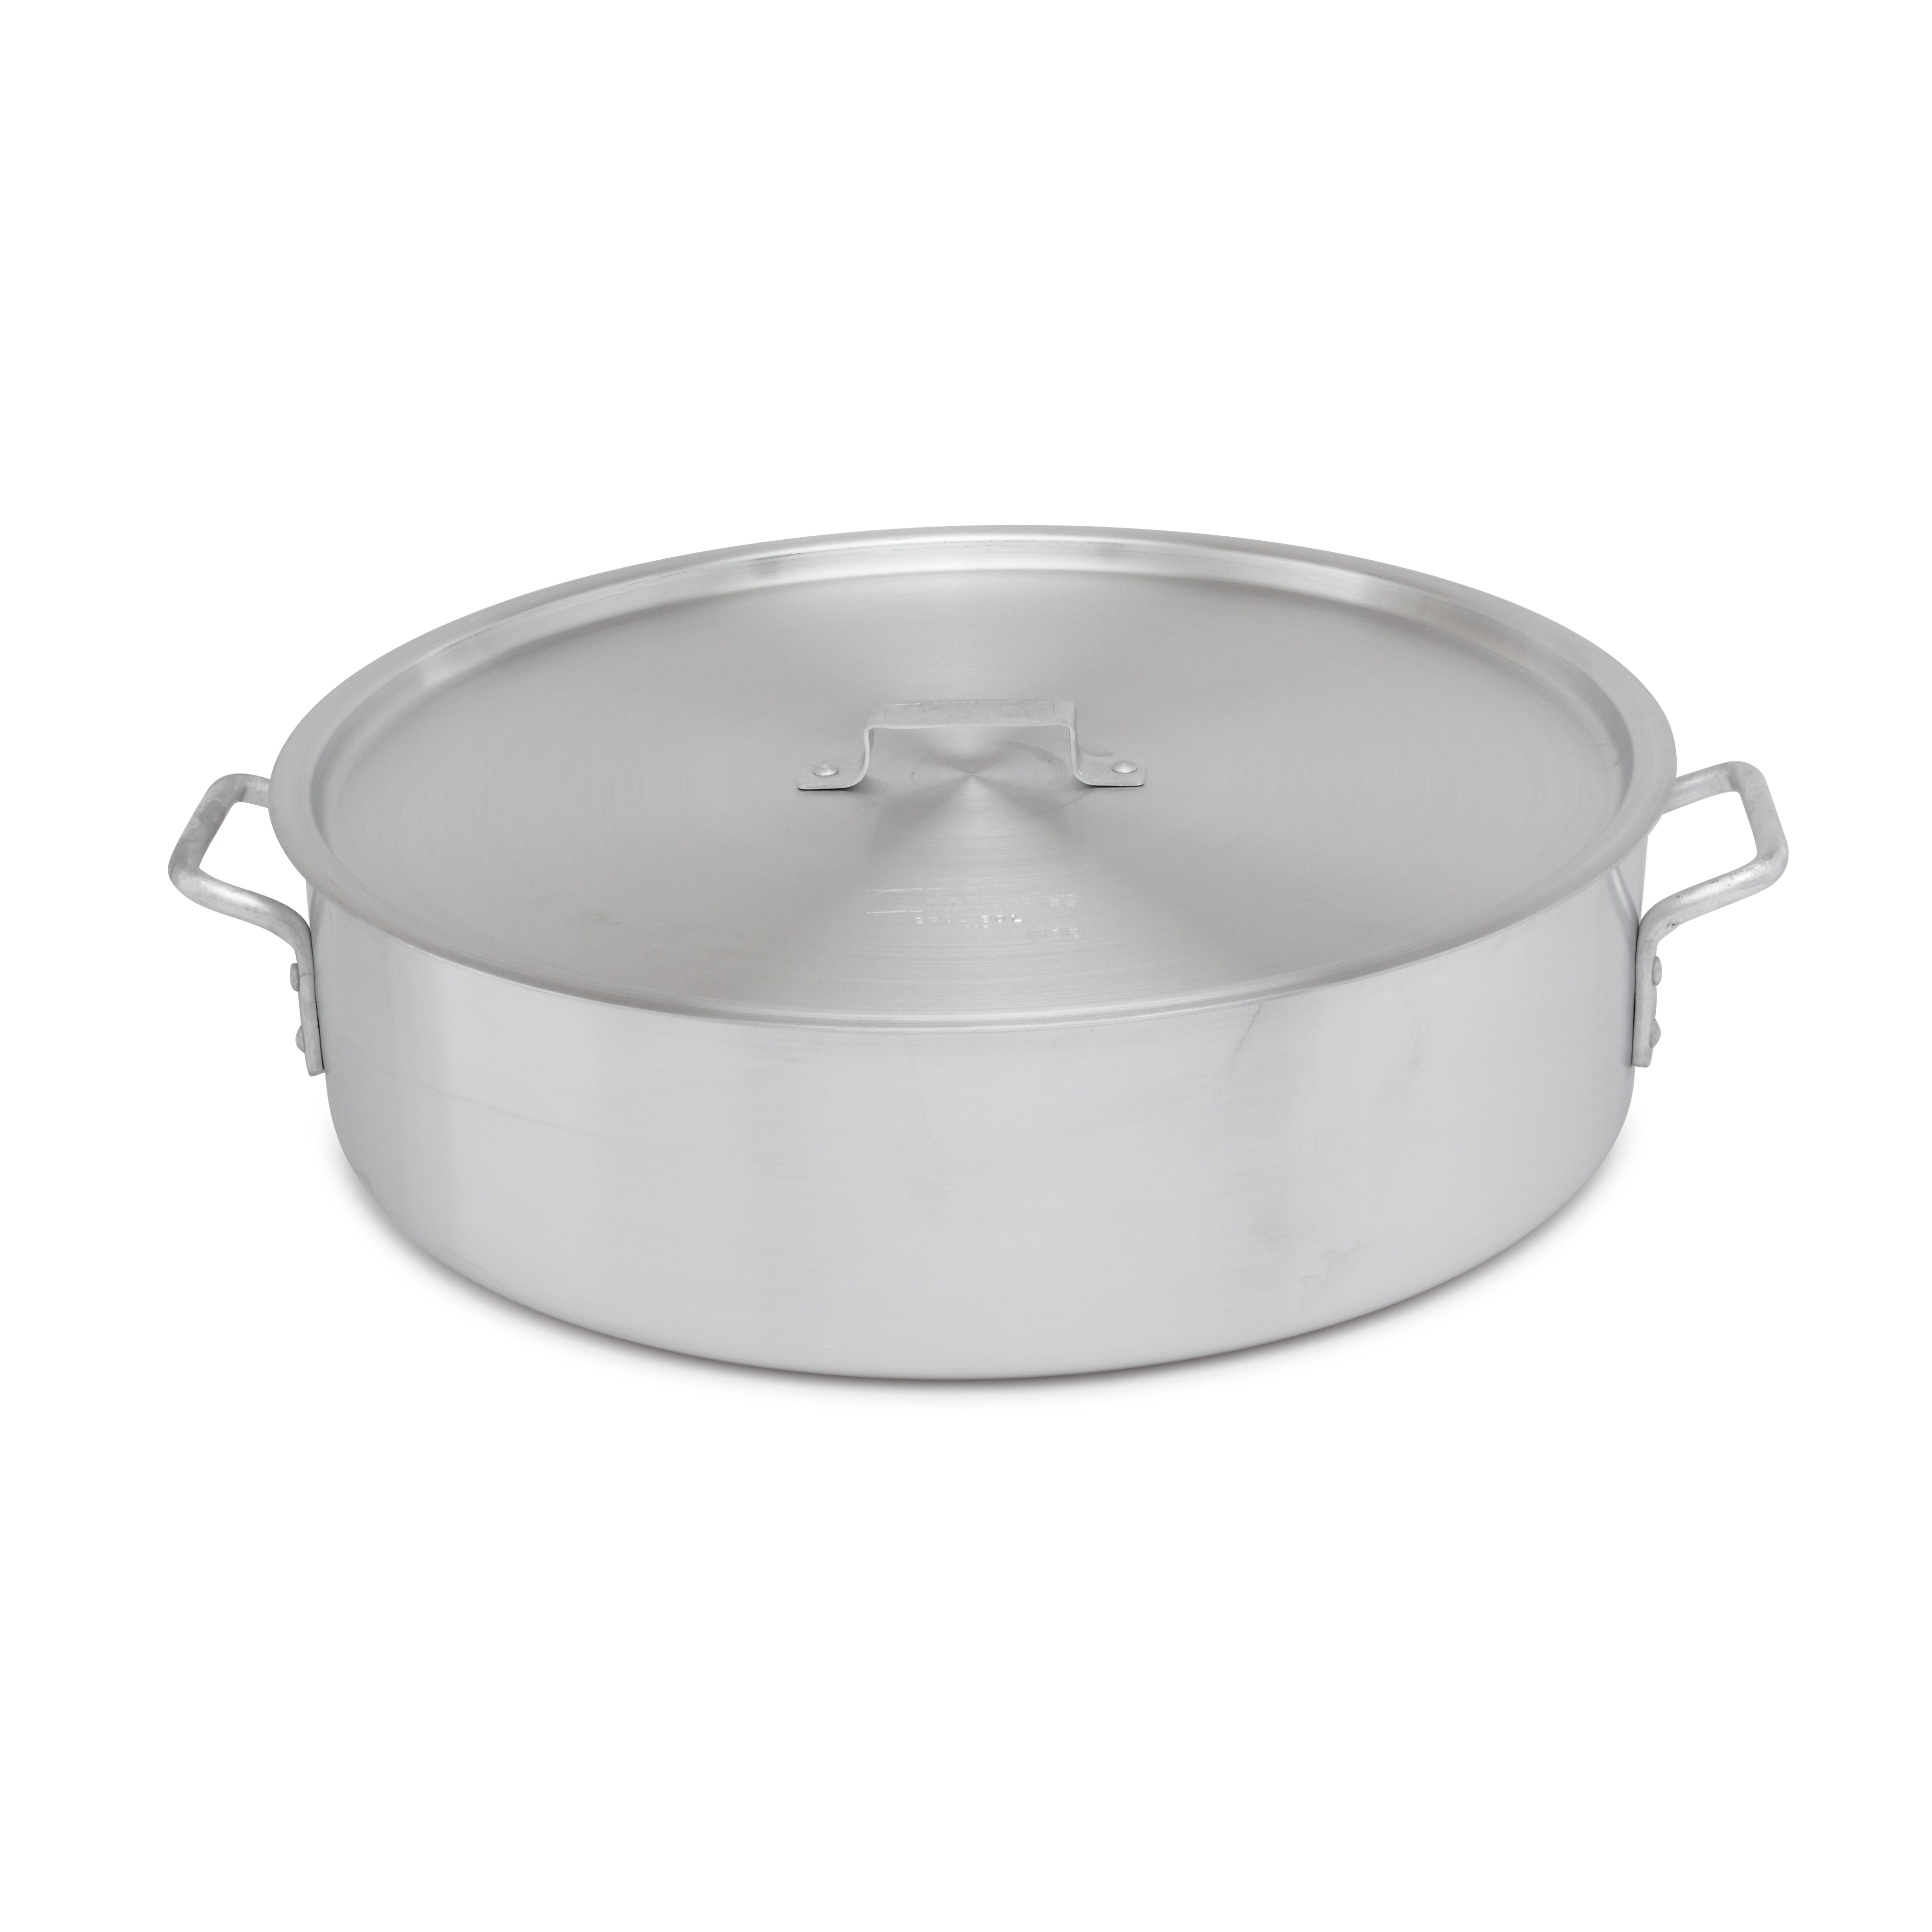 Royal Industries ROY BRAZ SW 30 brazier pan